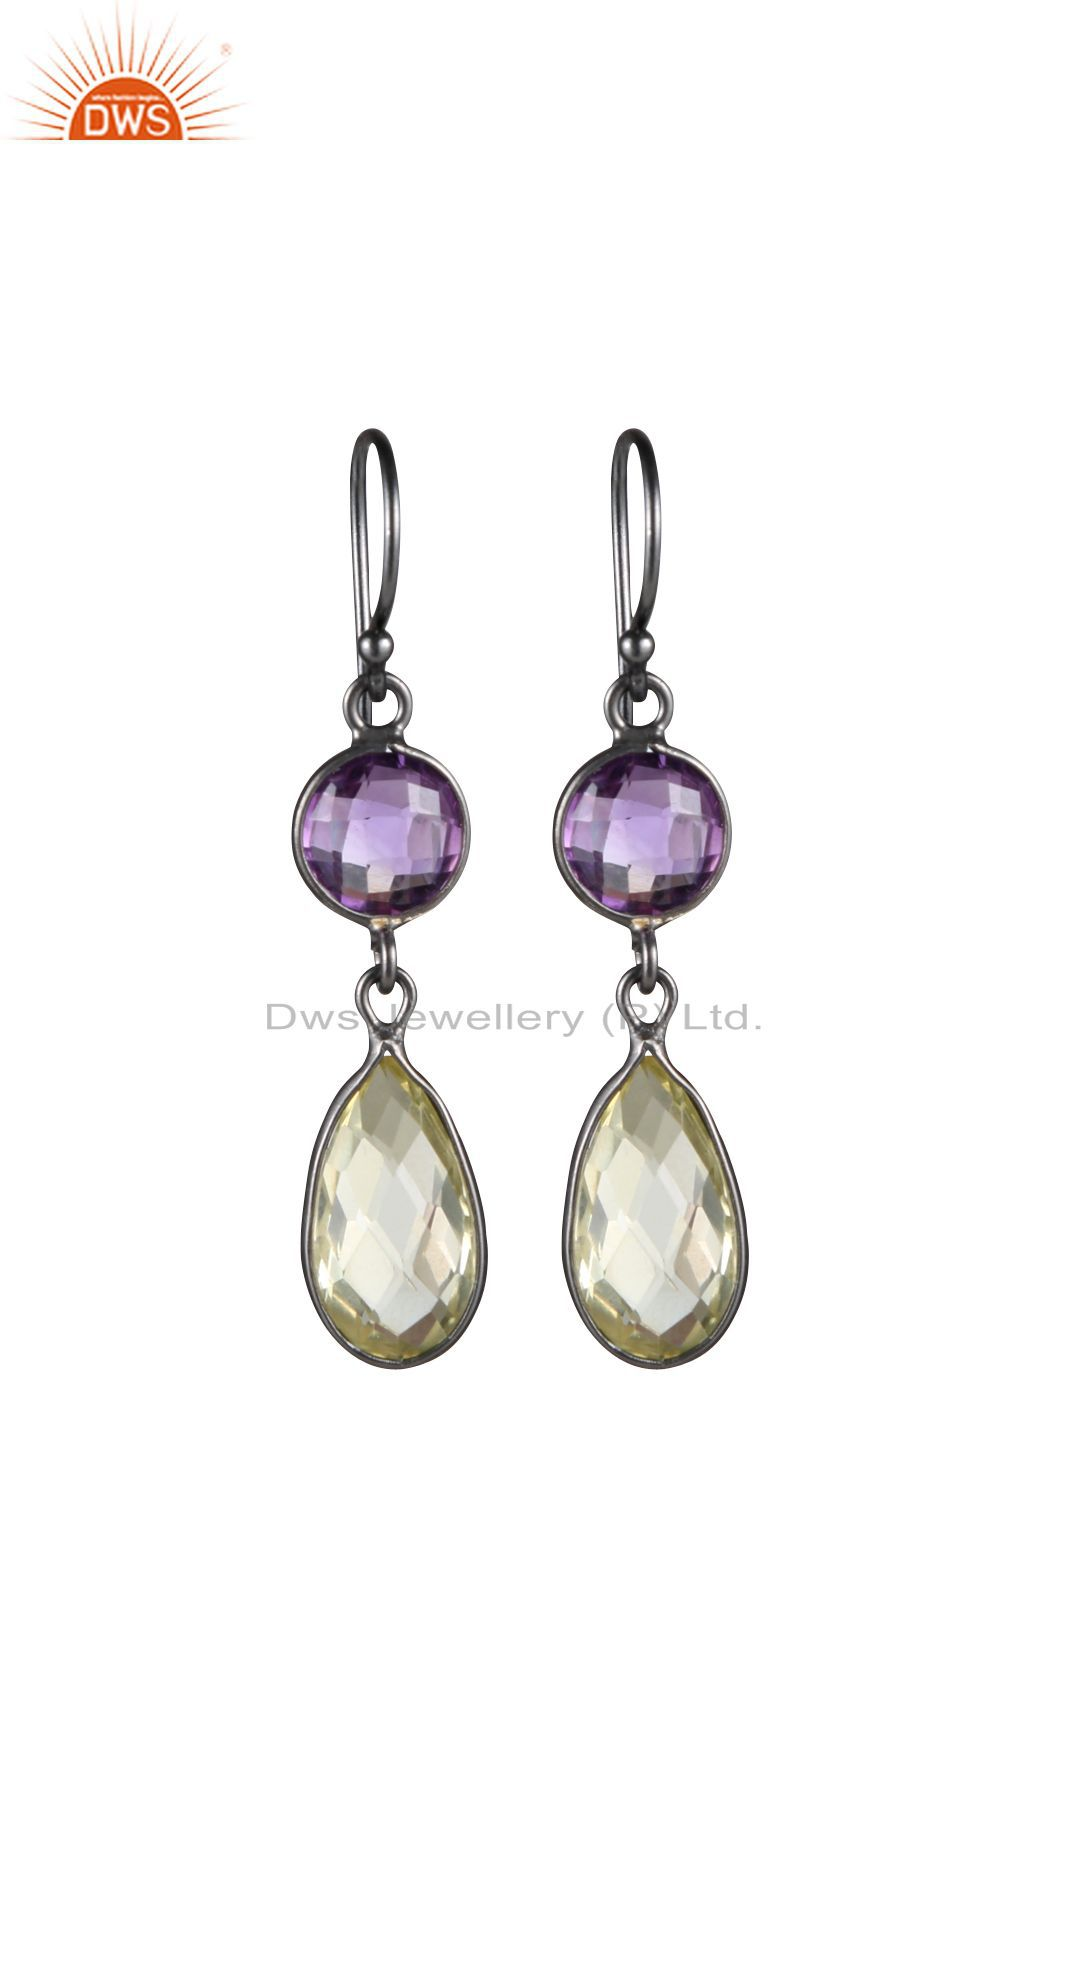 Oxidized Sterling Silver Lemon Topaz And Amethyst Gemstone Dangle Earrings